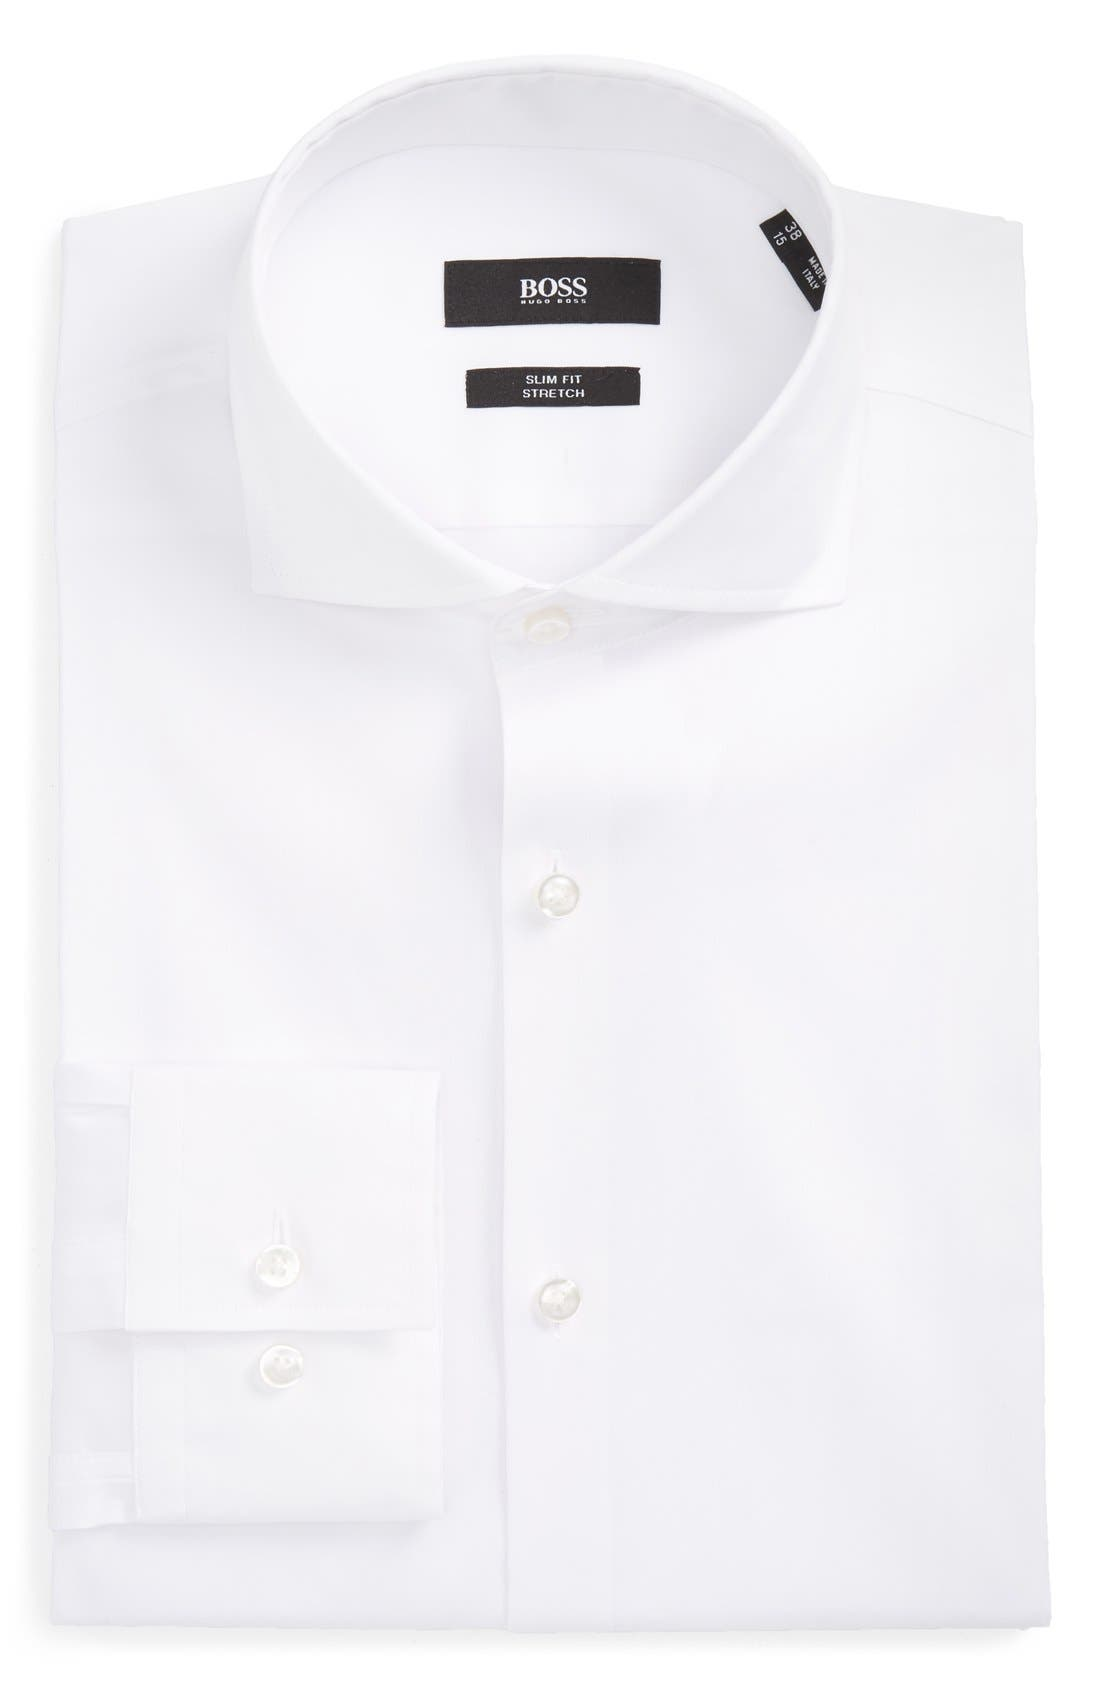 BOSS 'Jason' Slim Fit Solid Stretch Dress Shirt